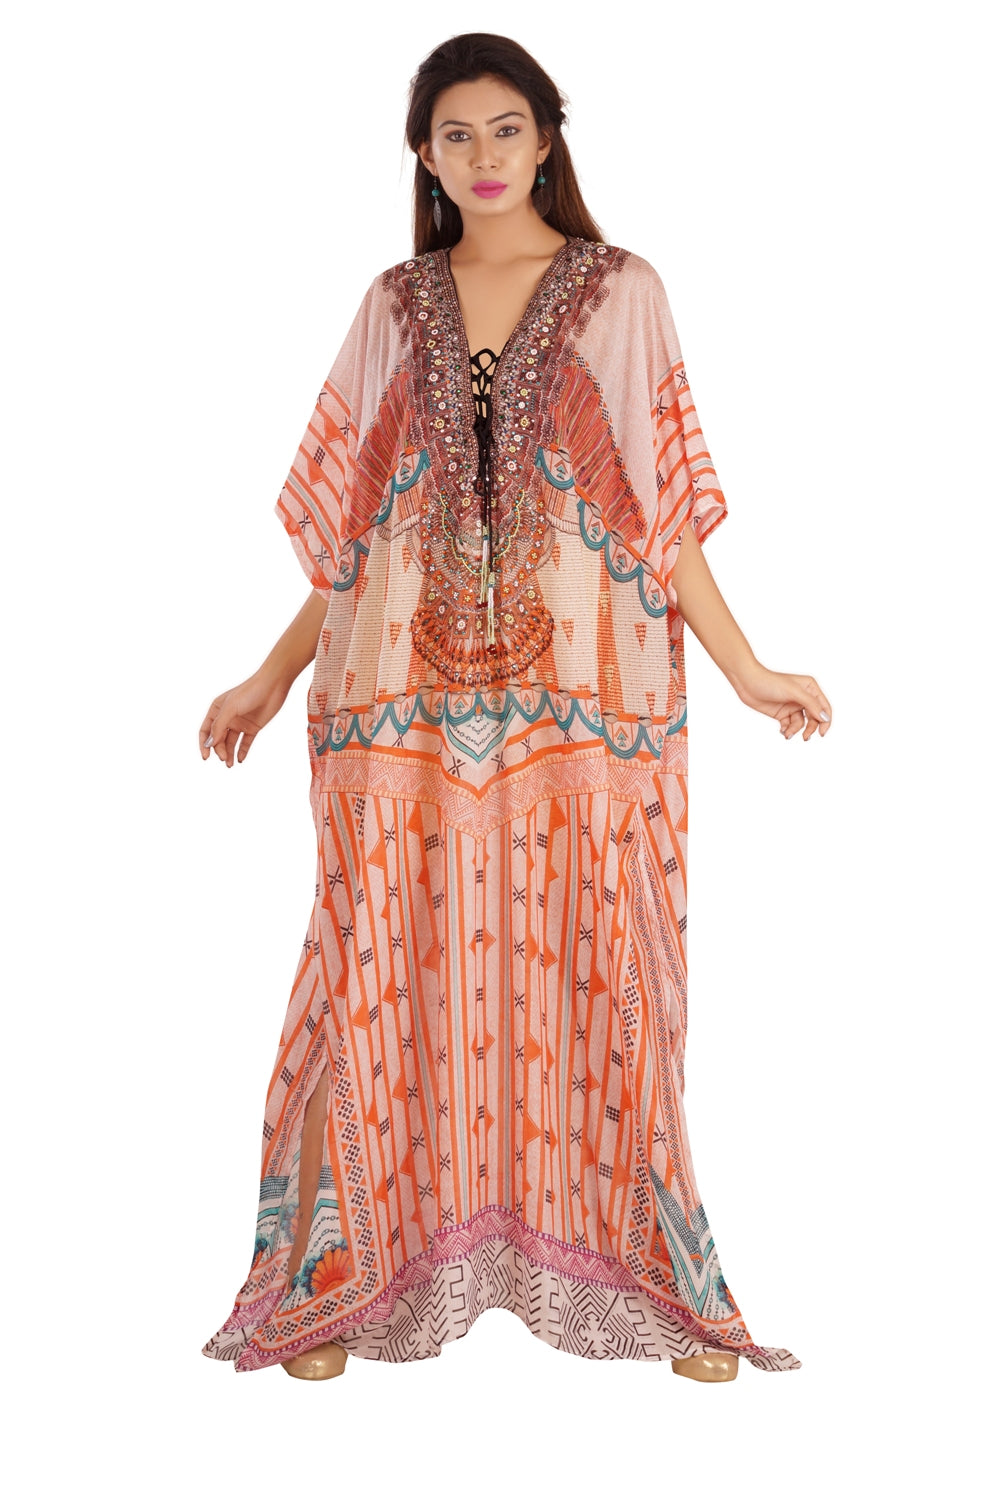 Orange Lace-up Silk Kaftan with Boho Design and Turkish Prints designer kaftan maxi dress - Silk kaftan